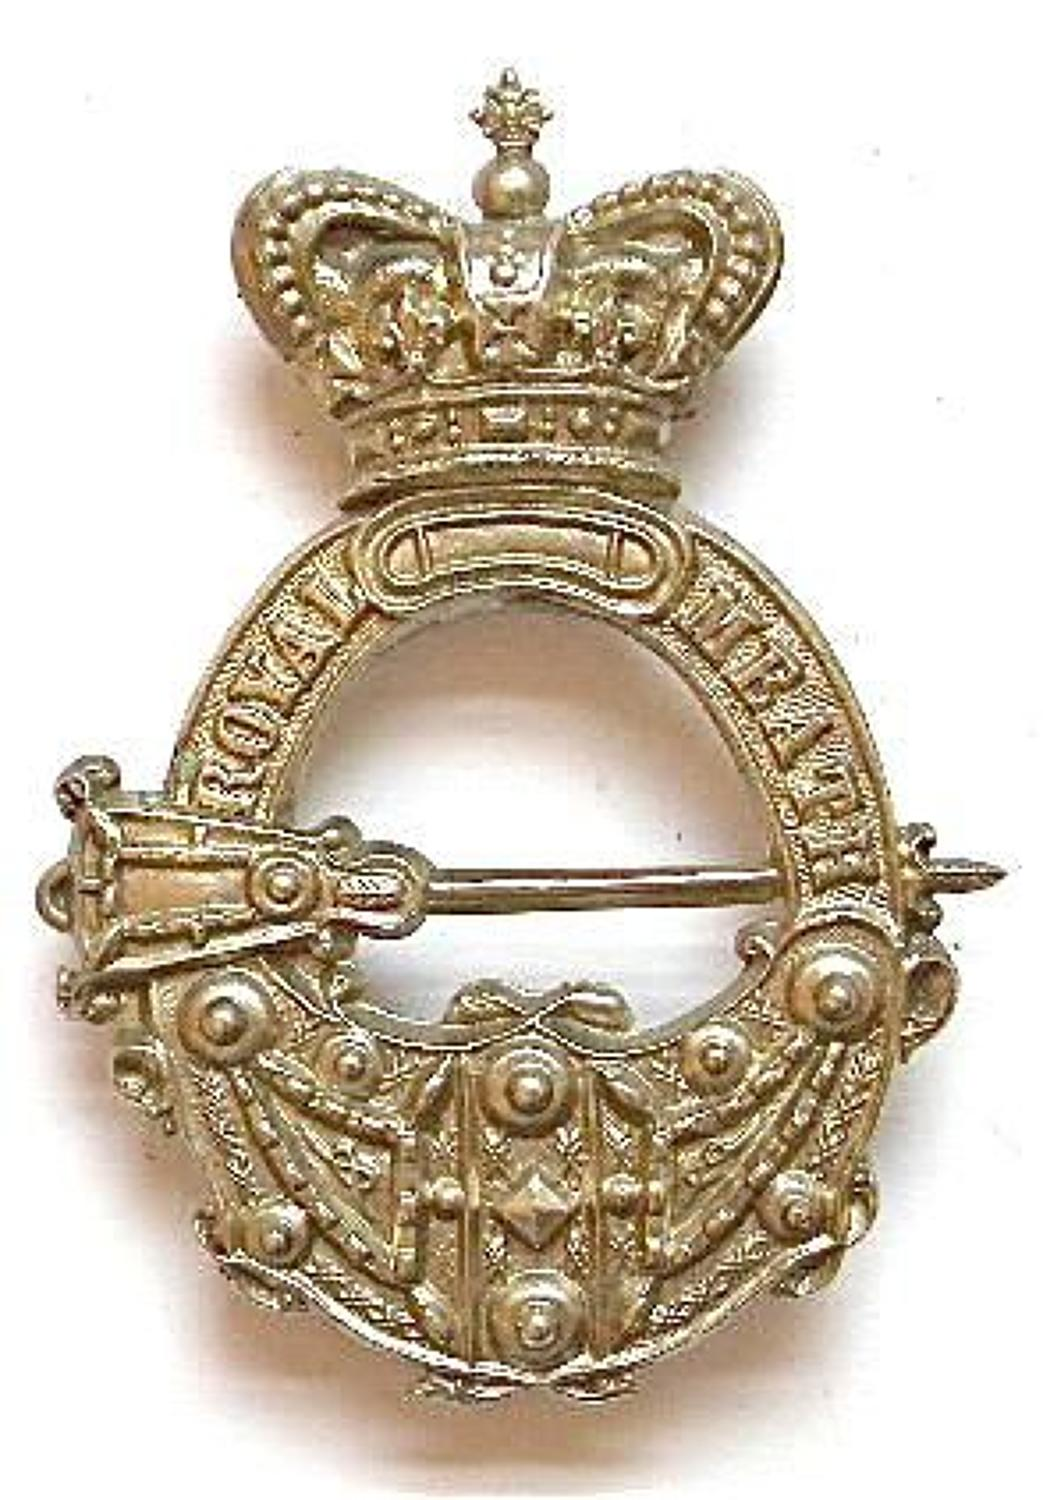 Irish. Royal Meath Militia Victorian OR's glengarry badge circa 1874